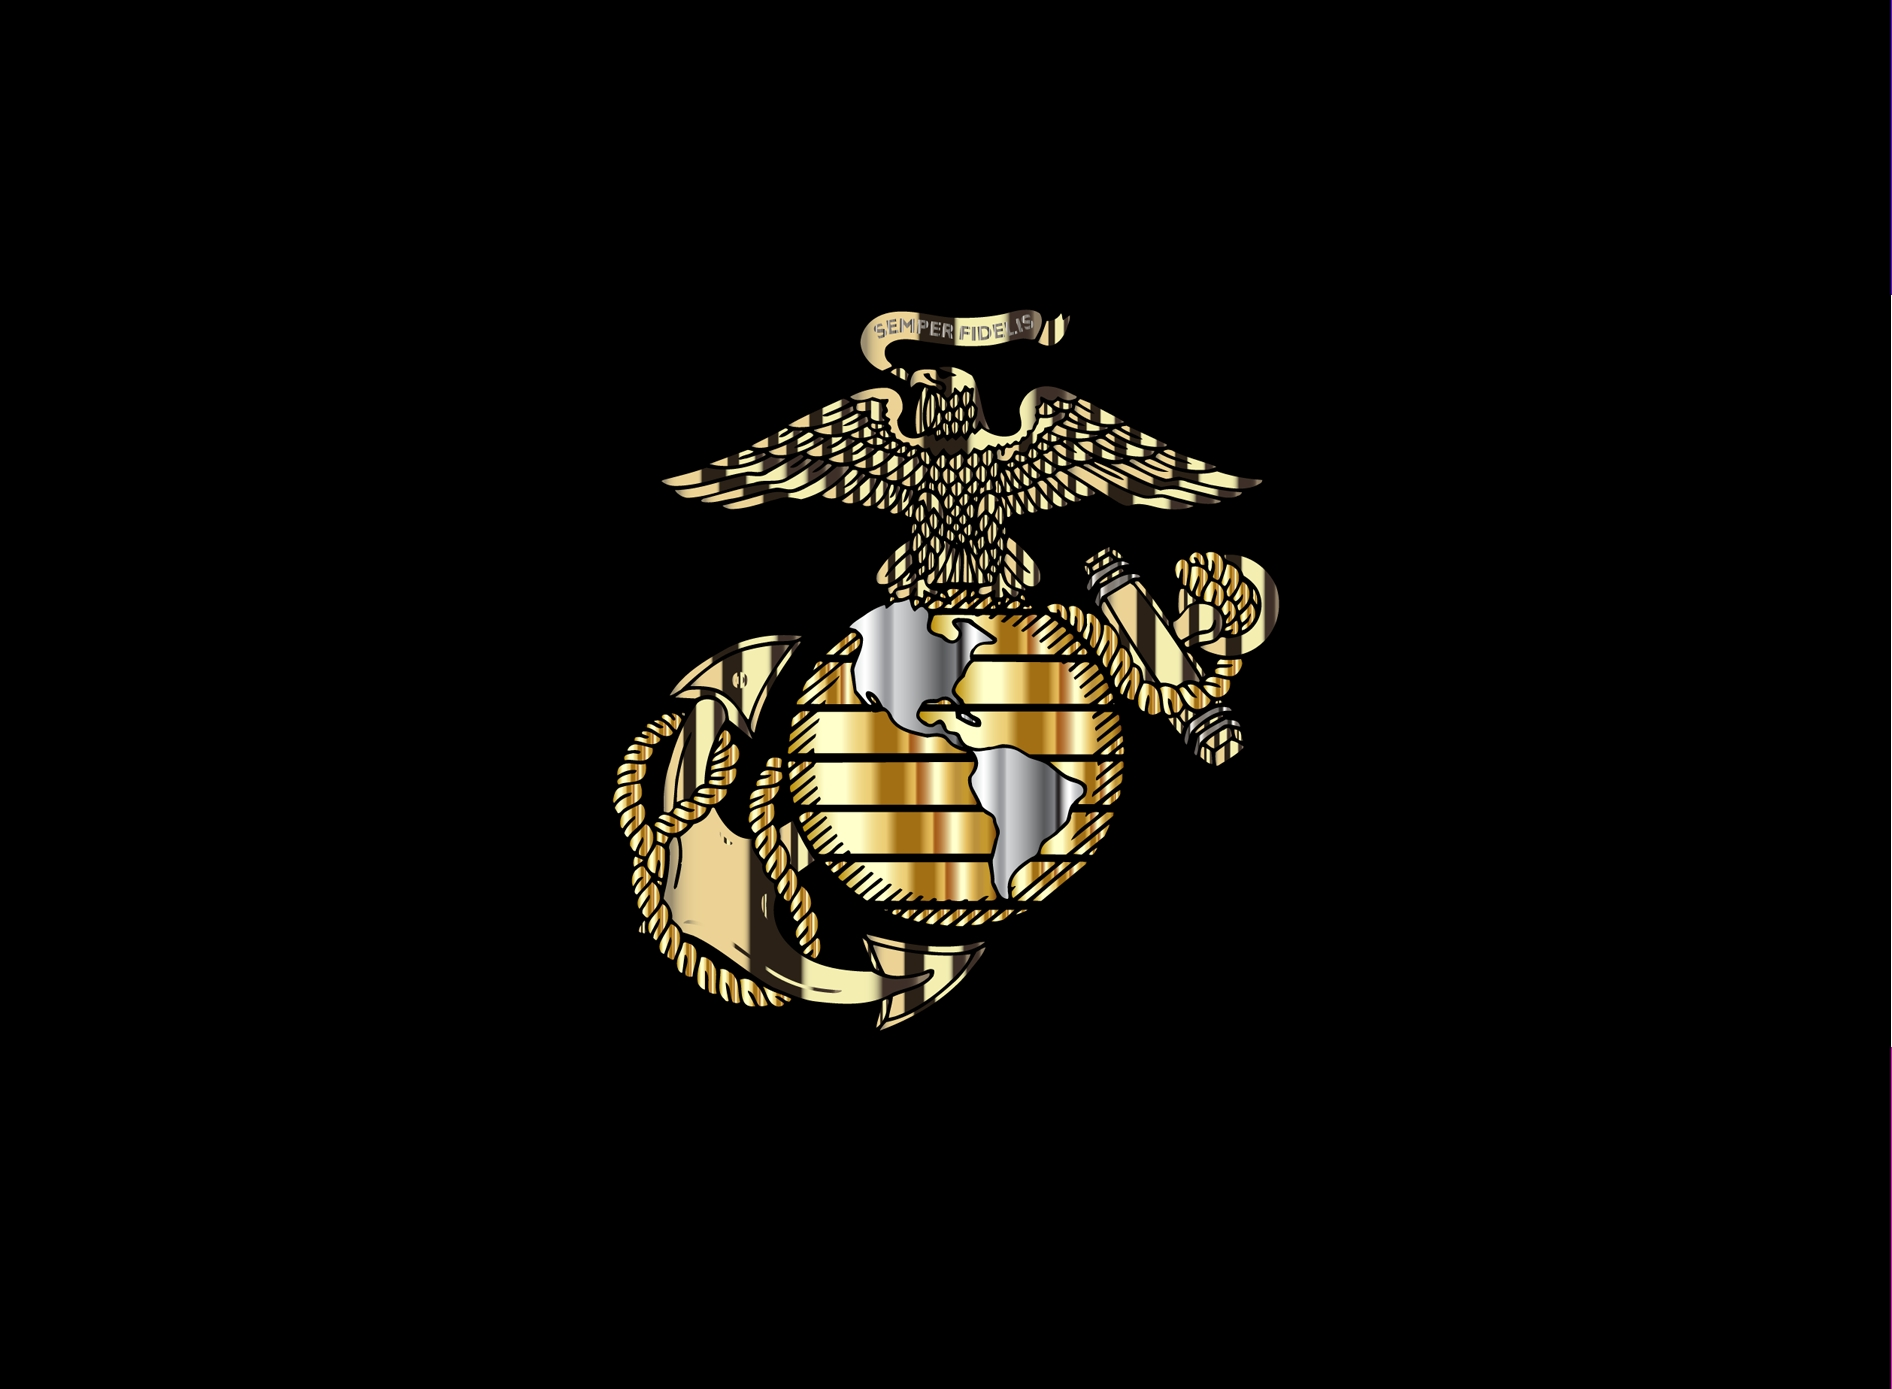 usmc logo wallpapers group (56+)